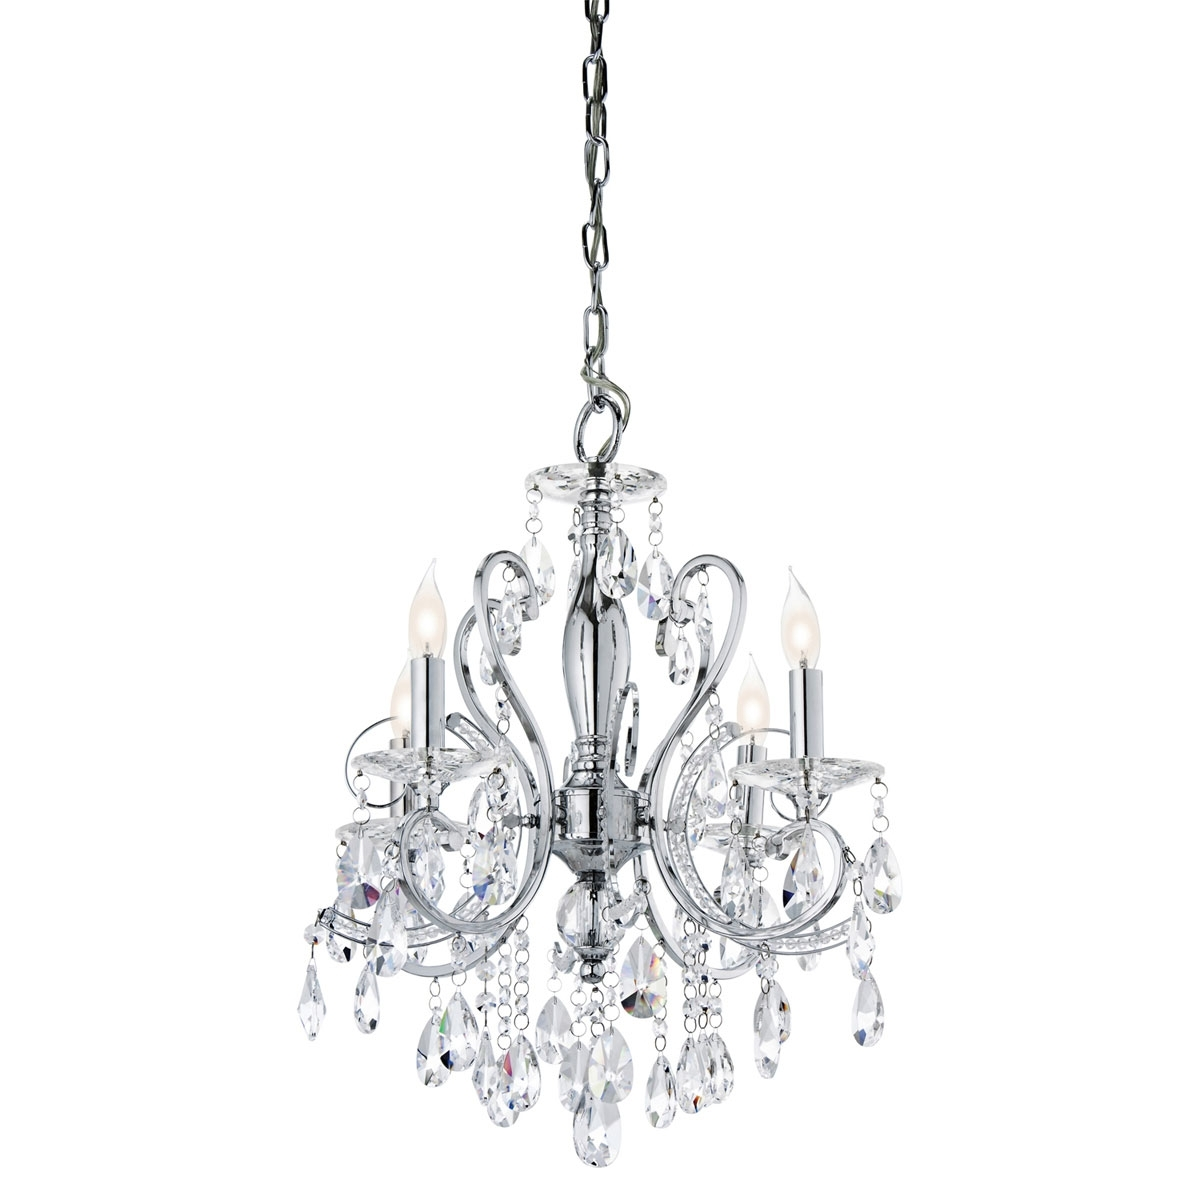 Popular Small Chandeliers Regarding Ultimate Mini Crystal Chandeliers About Modern Home Interior Design (View 11 of 15)